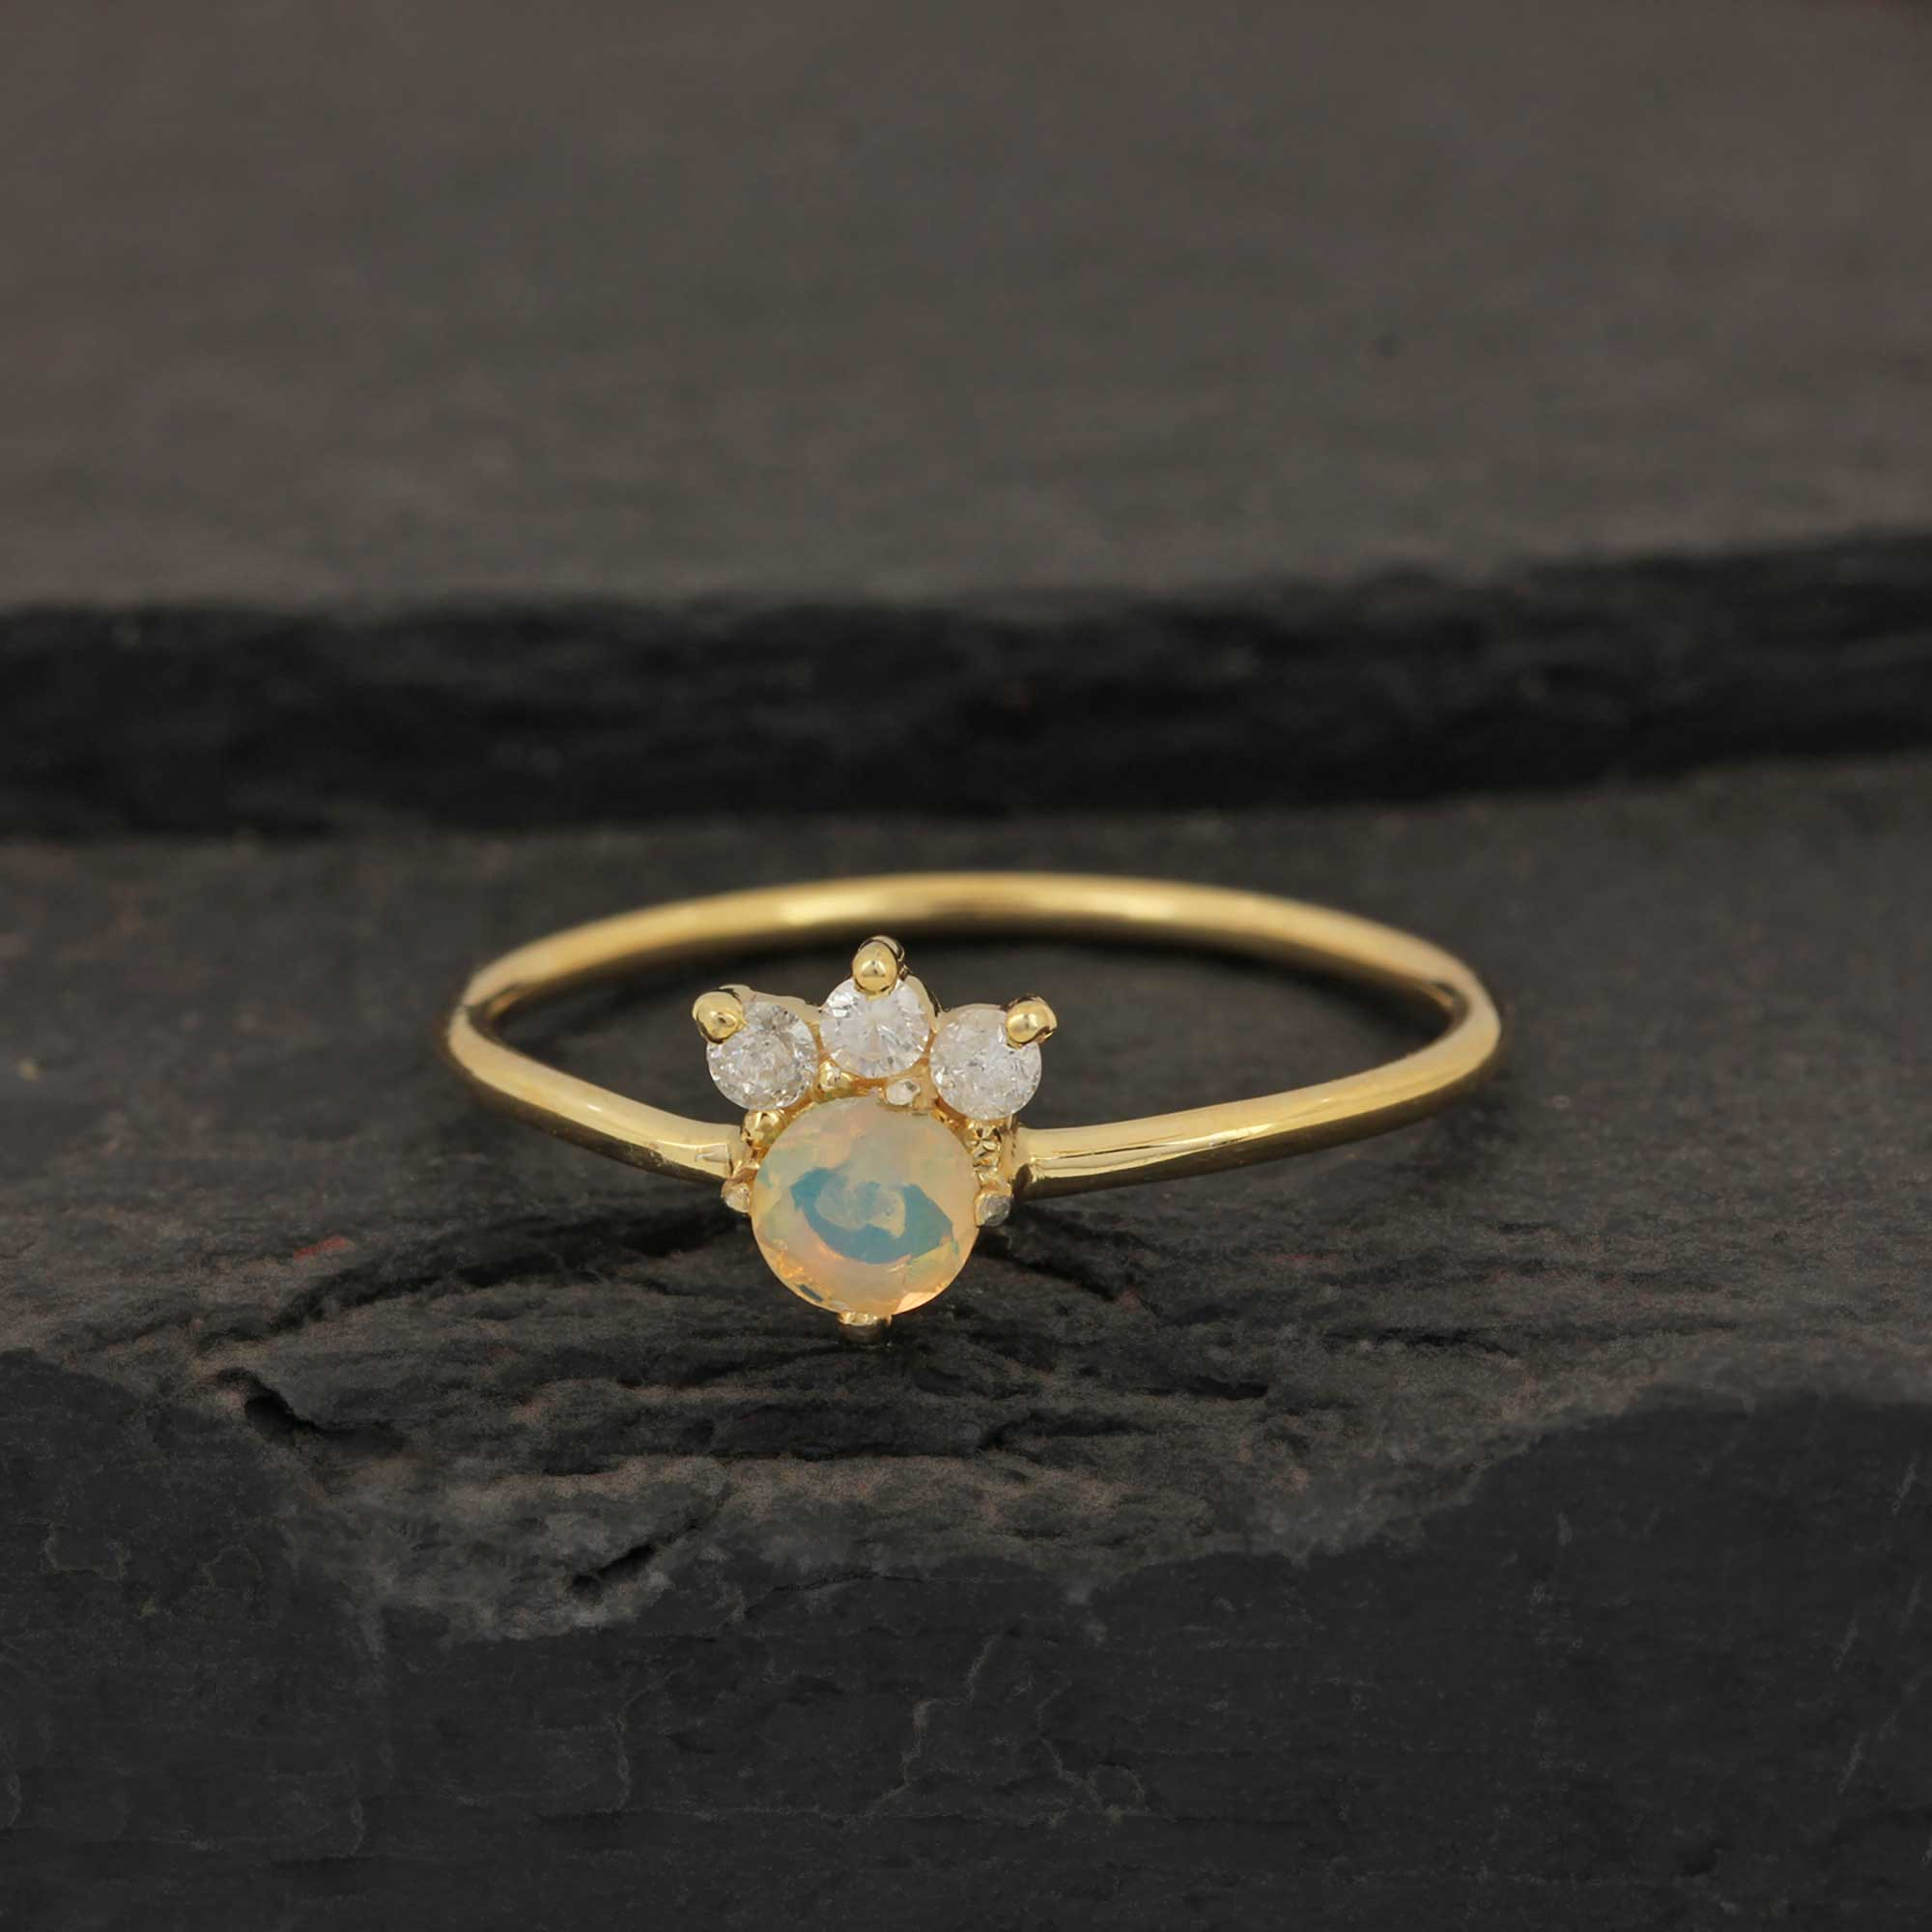 14k Solid Yellow Gold Diamond Opal Ring